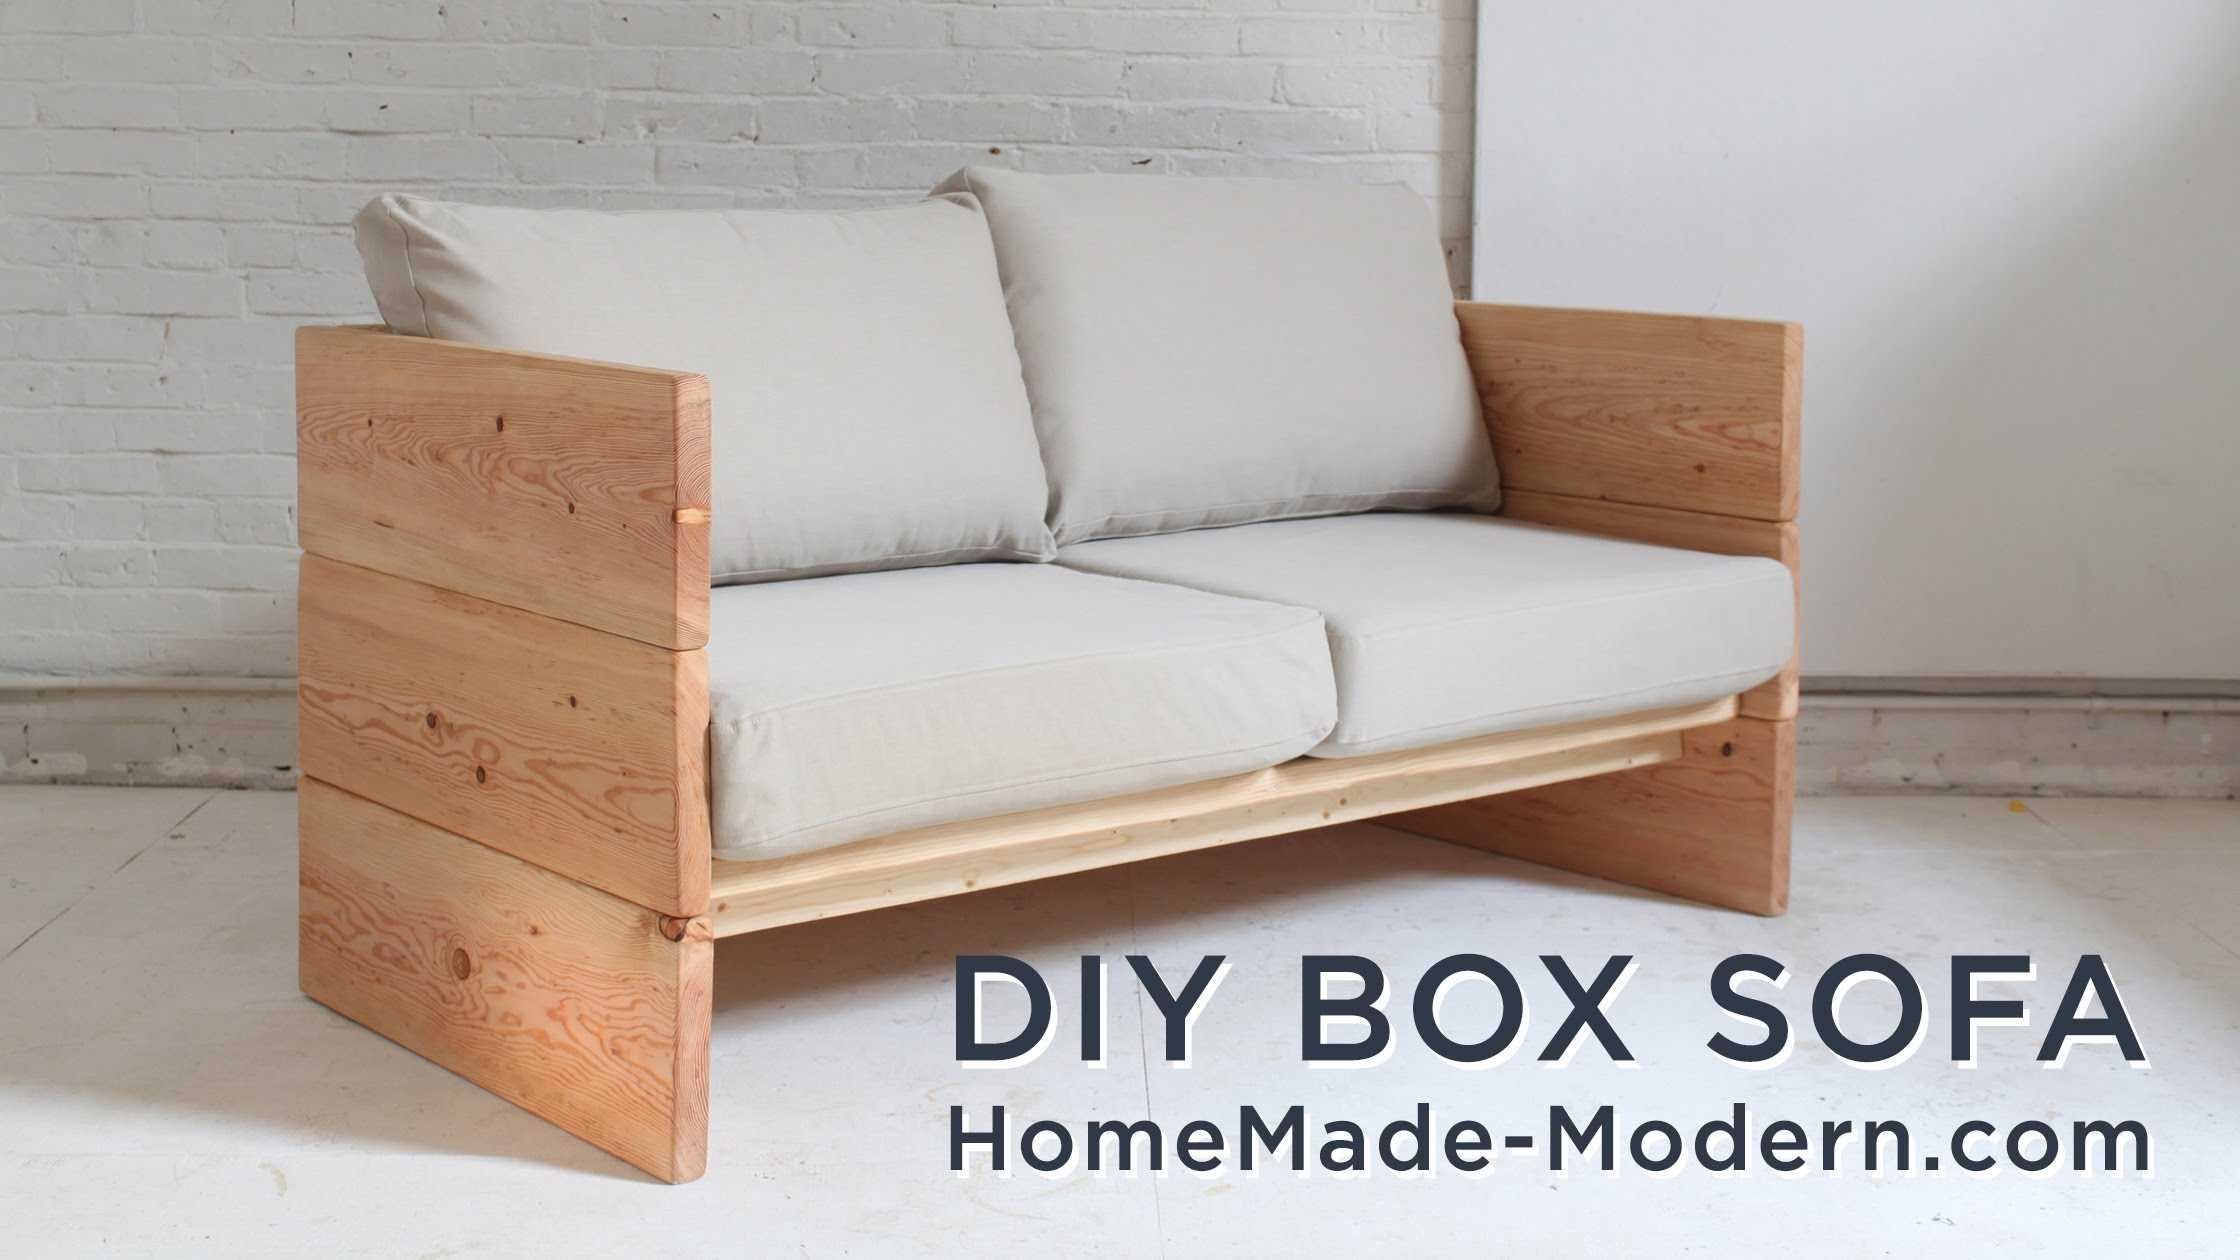 Diy Sofa Made Out Of 2x10s Youtube With Regard To Diy Sleeper Sofa (Image 9 of 15)